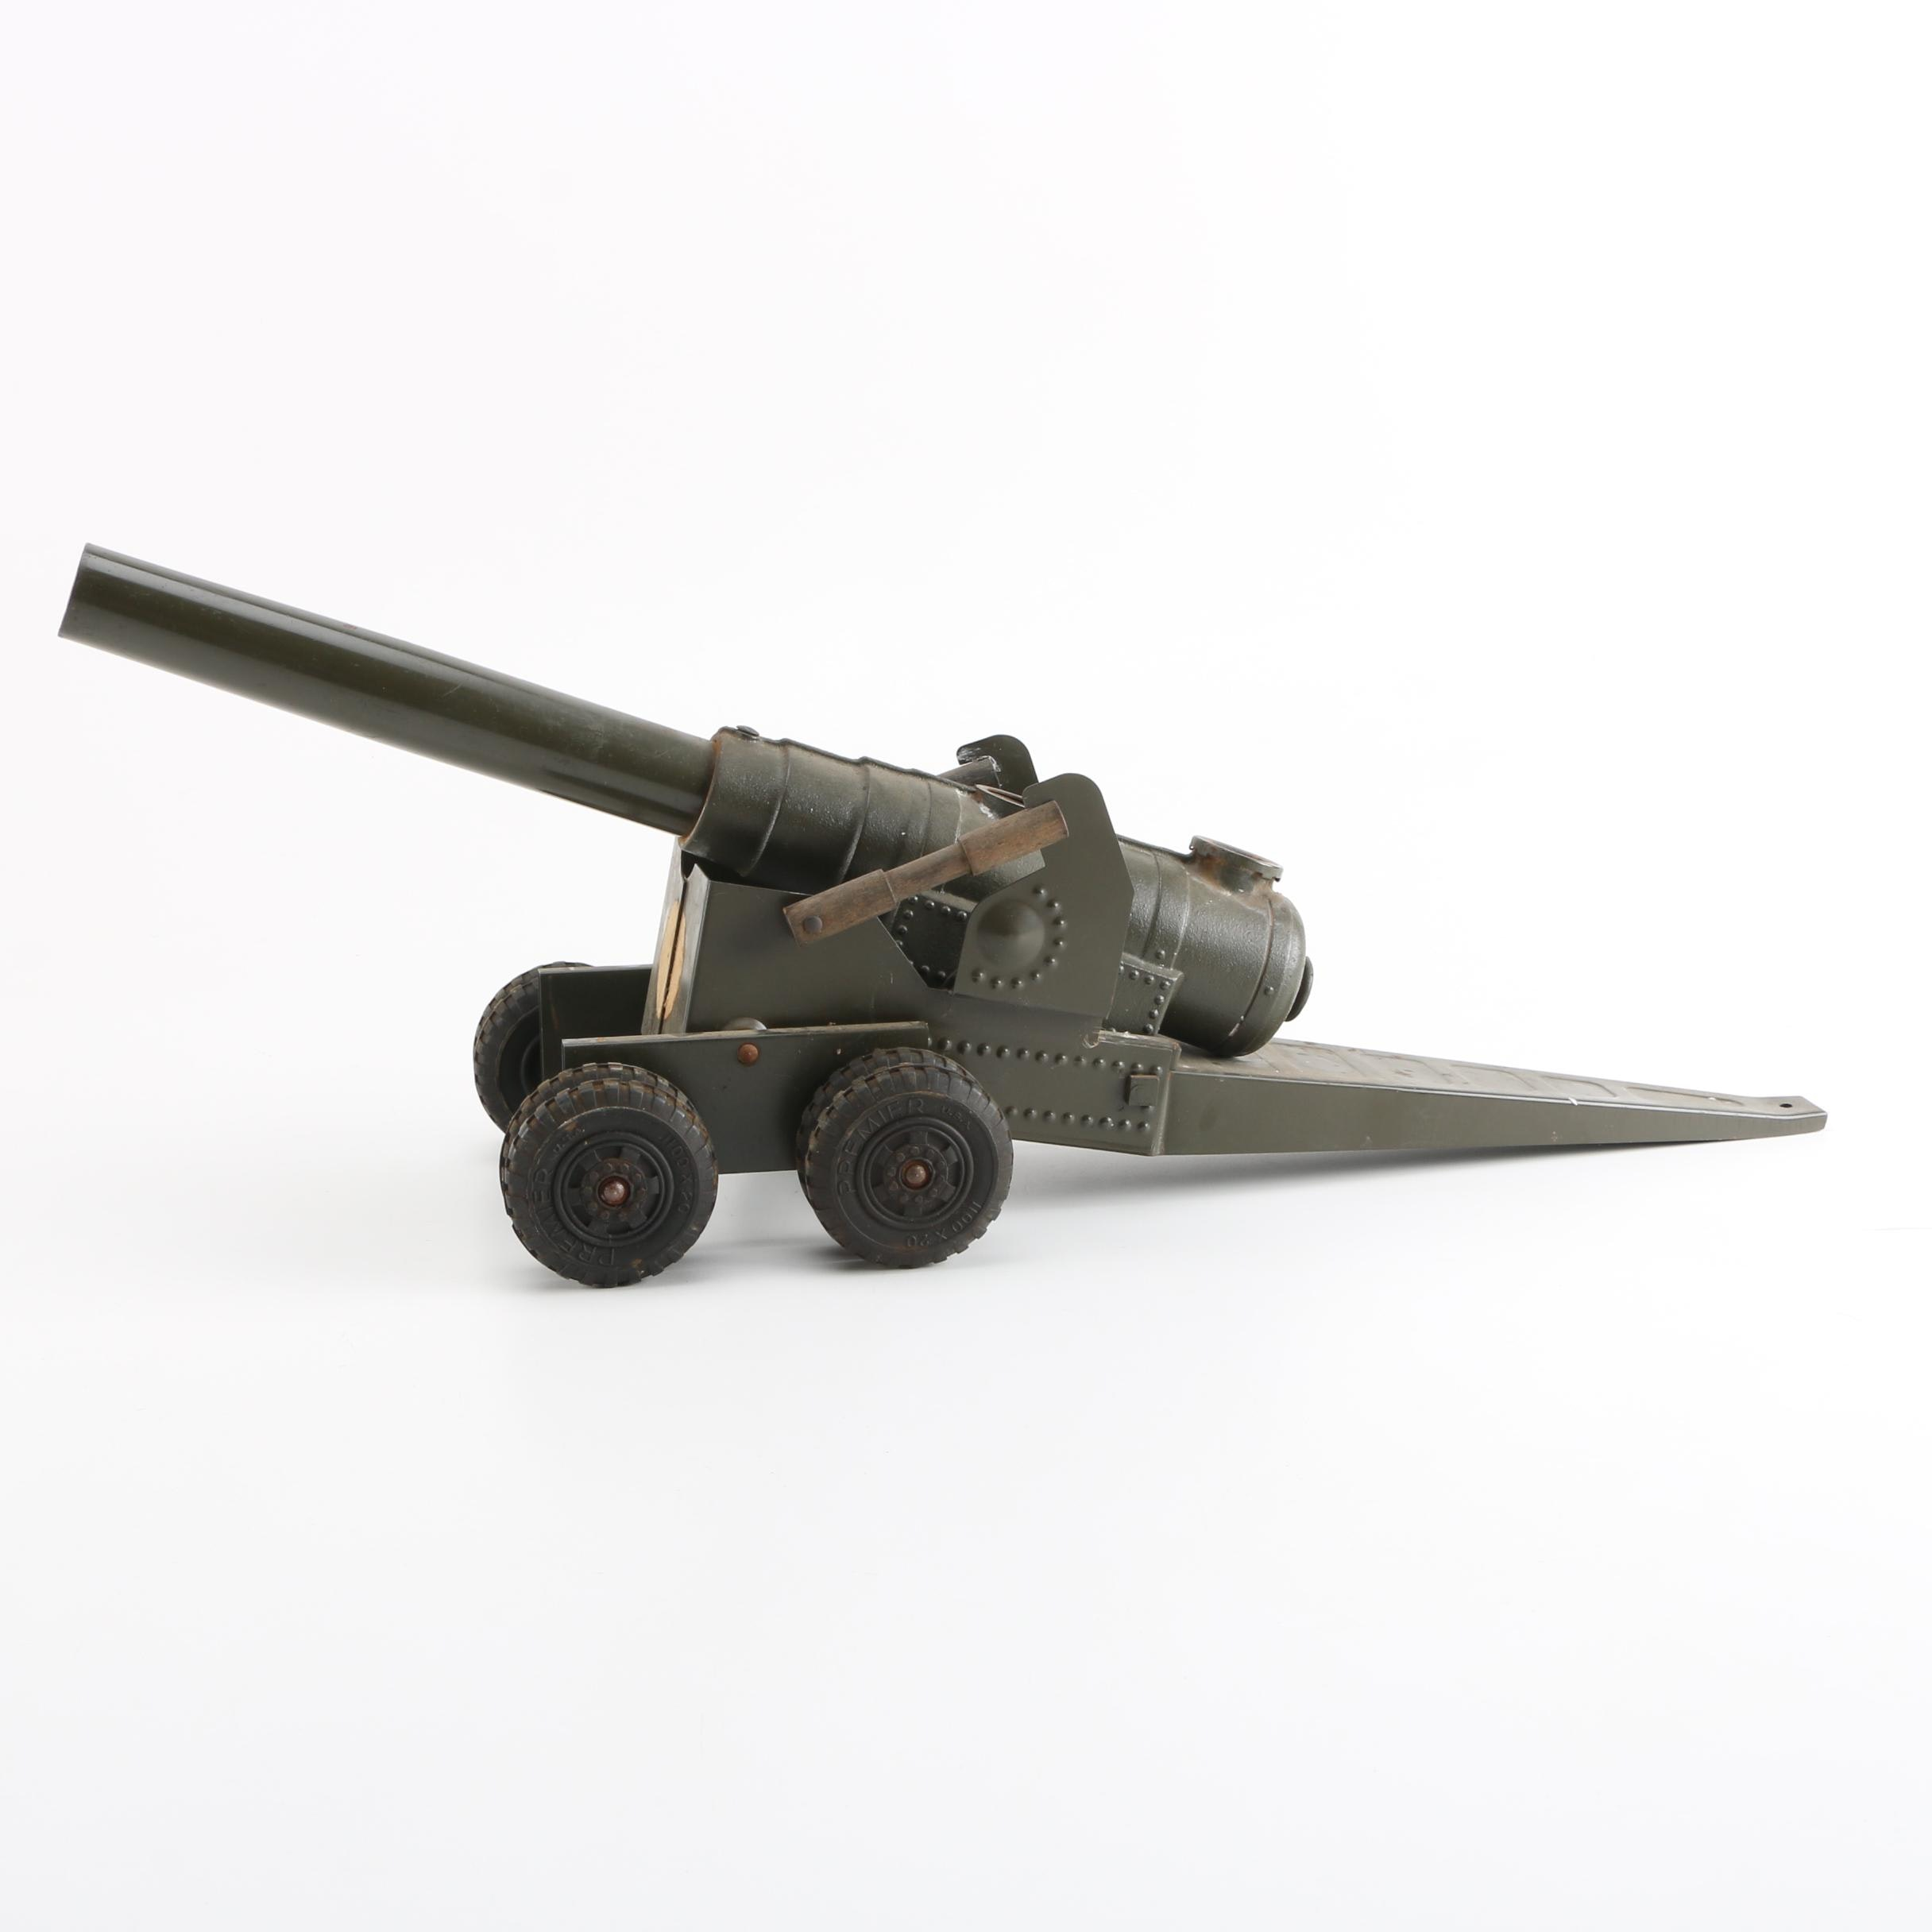 Miniature Metal Toy Cannon